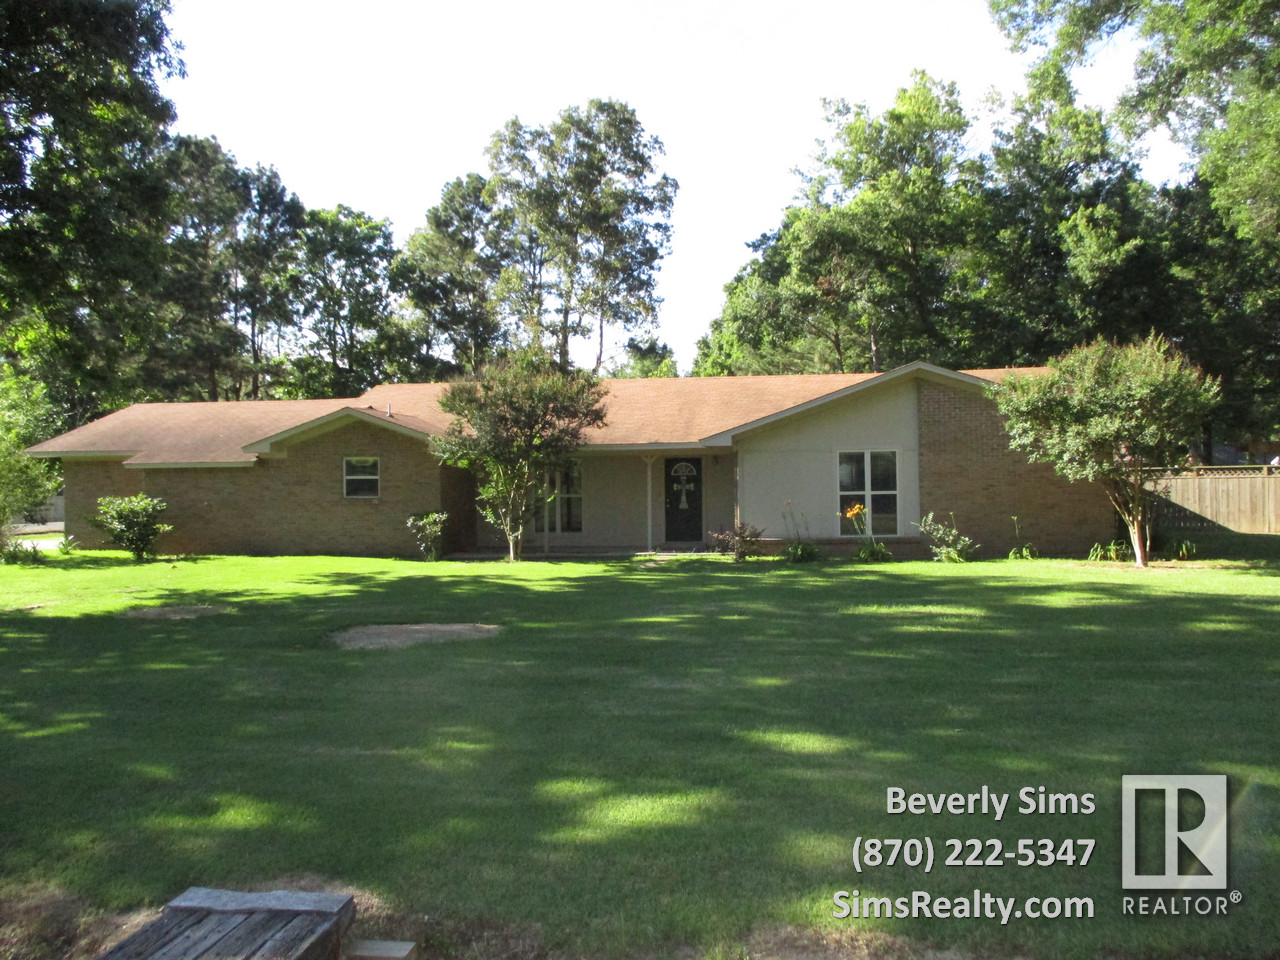 SOLD – 17 Shannon Dr., McGehee, AR